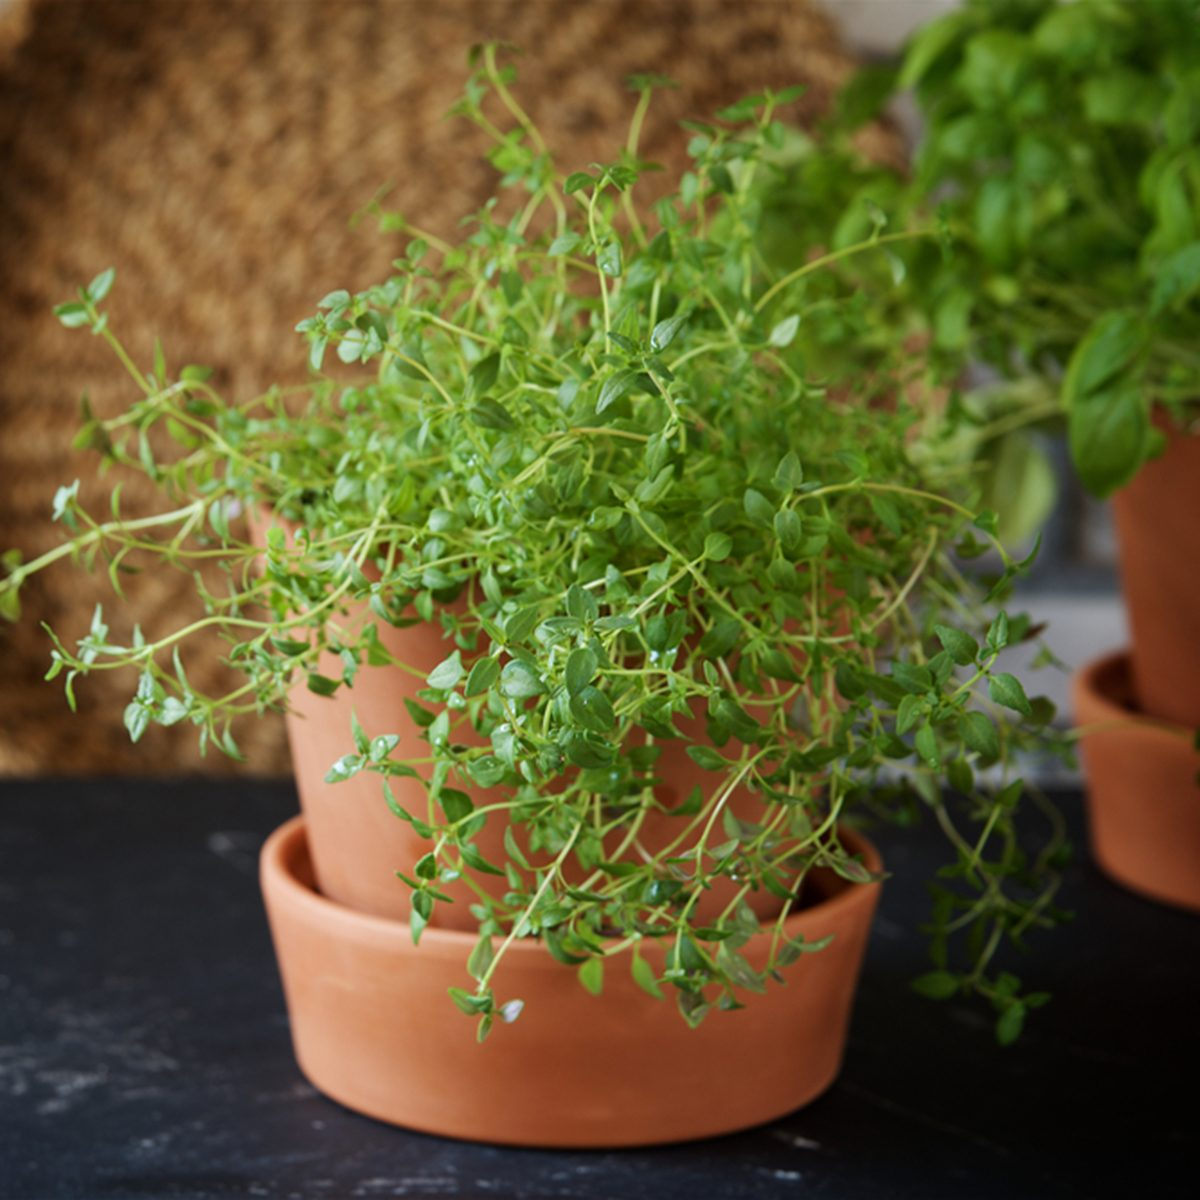 Home-grown thyme in a pot